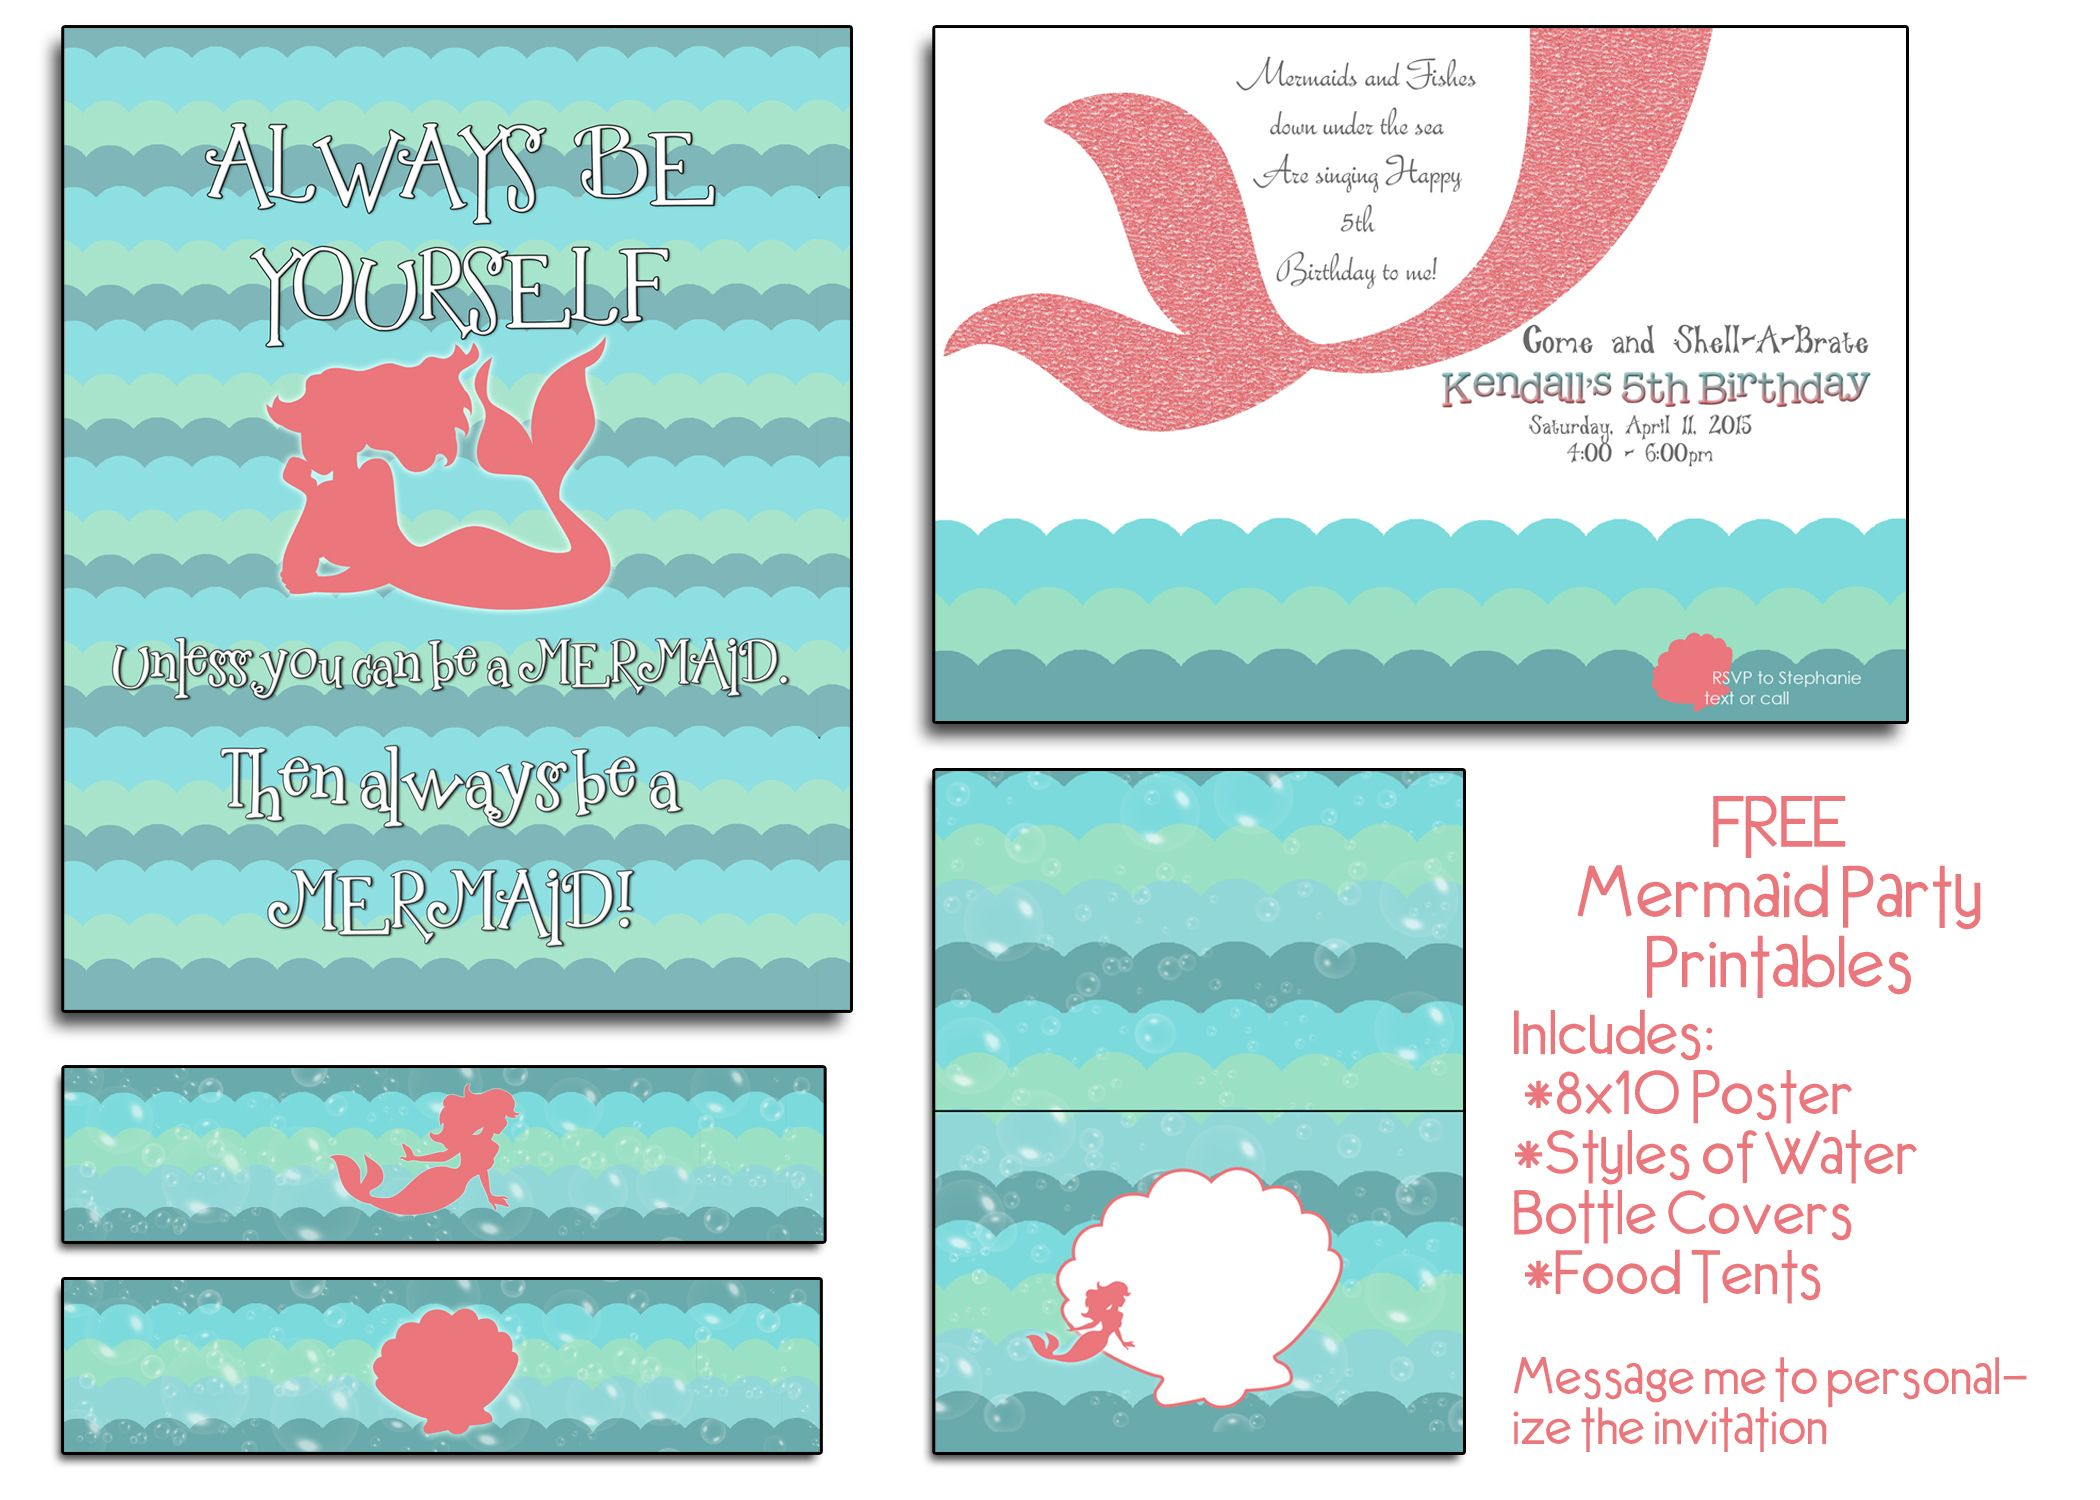 photo about Free Printable Food Labels for Party called No cost Mermaid Celebration Printables